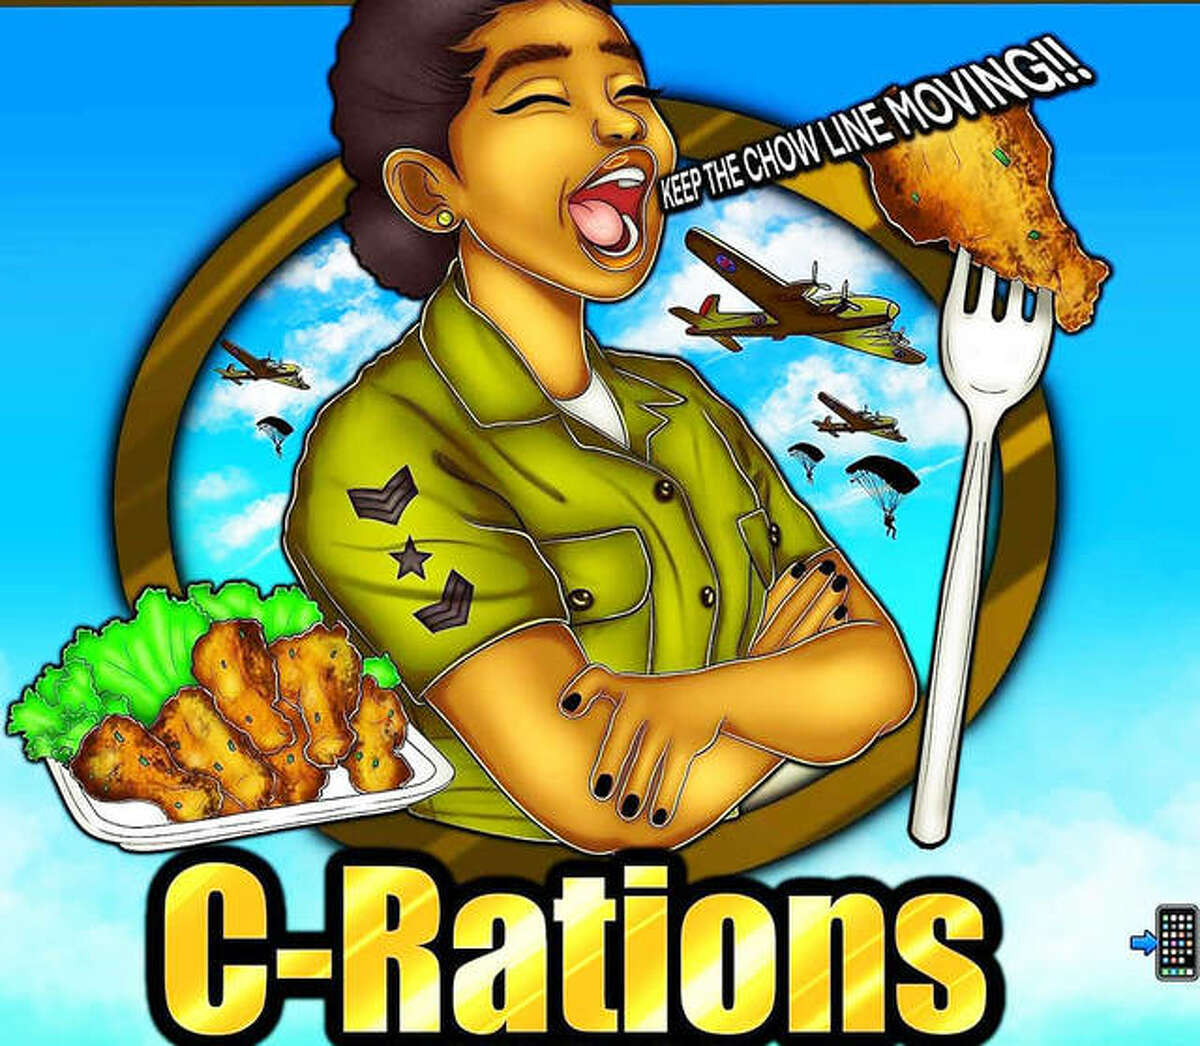 """C-Rations Grub Hub's logo features an original hand-drawn work by Memphis, Tennessee artist Kalunda Smith. C-Rations' owner Christina """"Christy"""" Harvey sought an illustration for her food truck business via Facebook, receiving about 40 responses; Smith was the only artist who did her work by hand, not computer."""